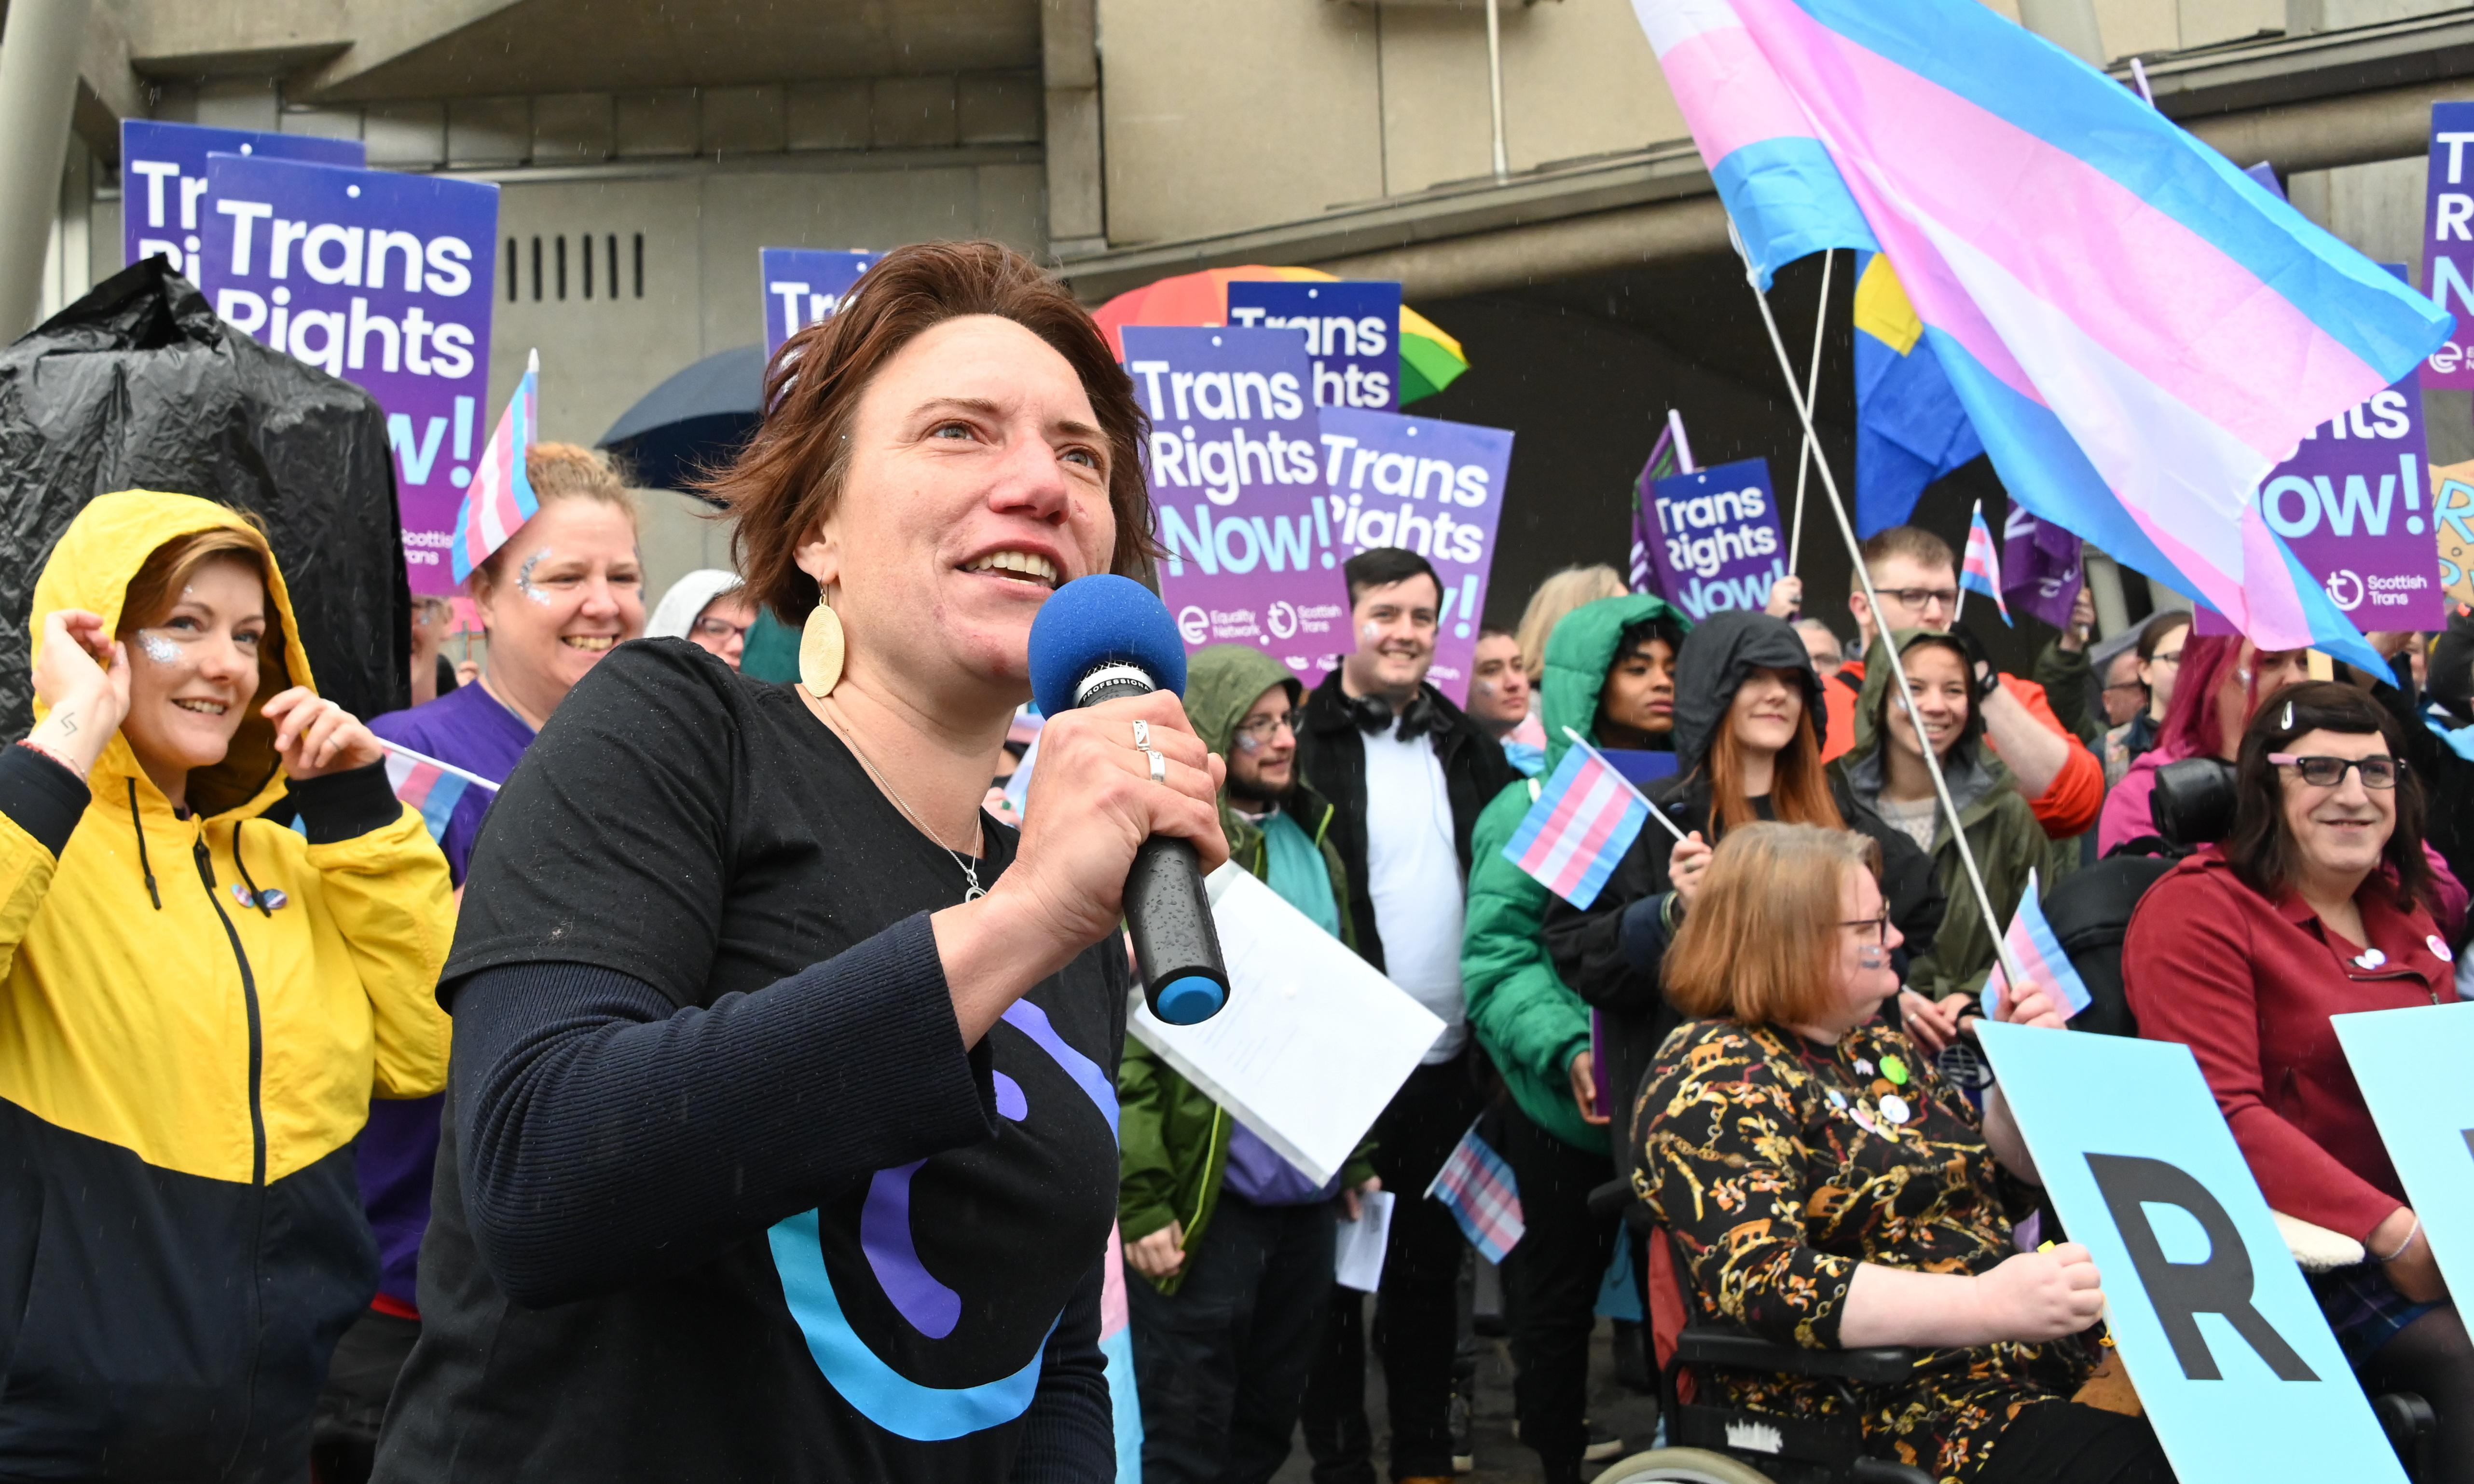 Scotland to run new consultations before updating gender law